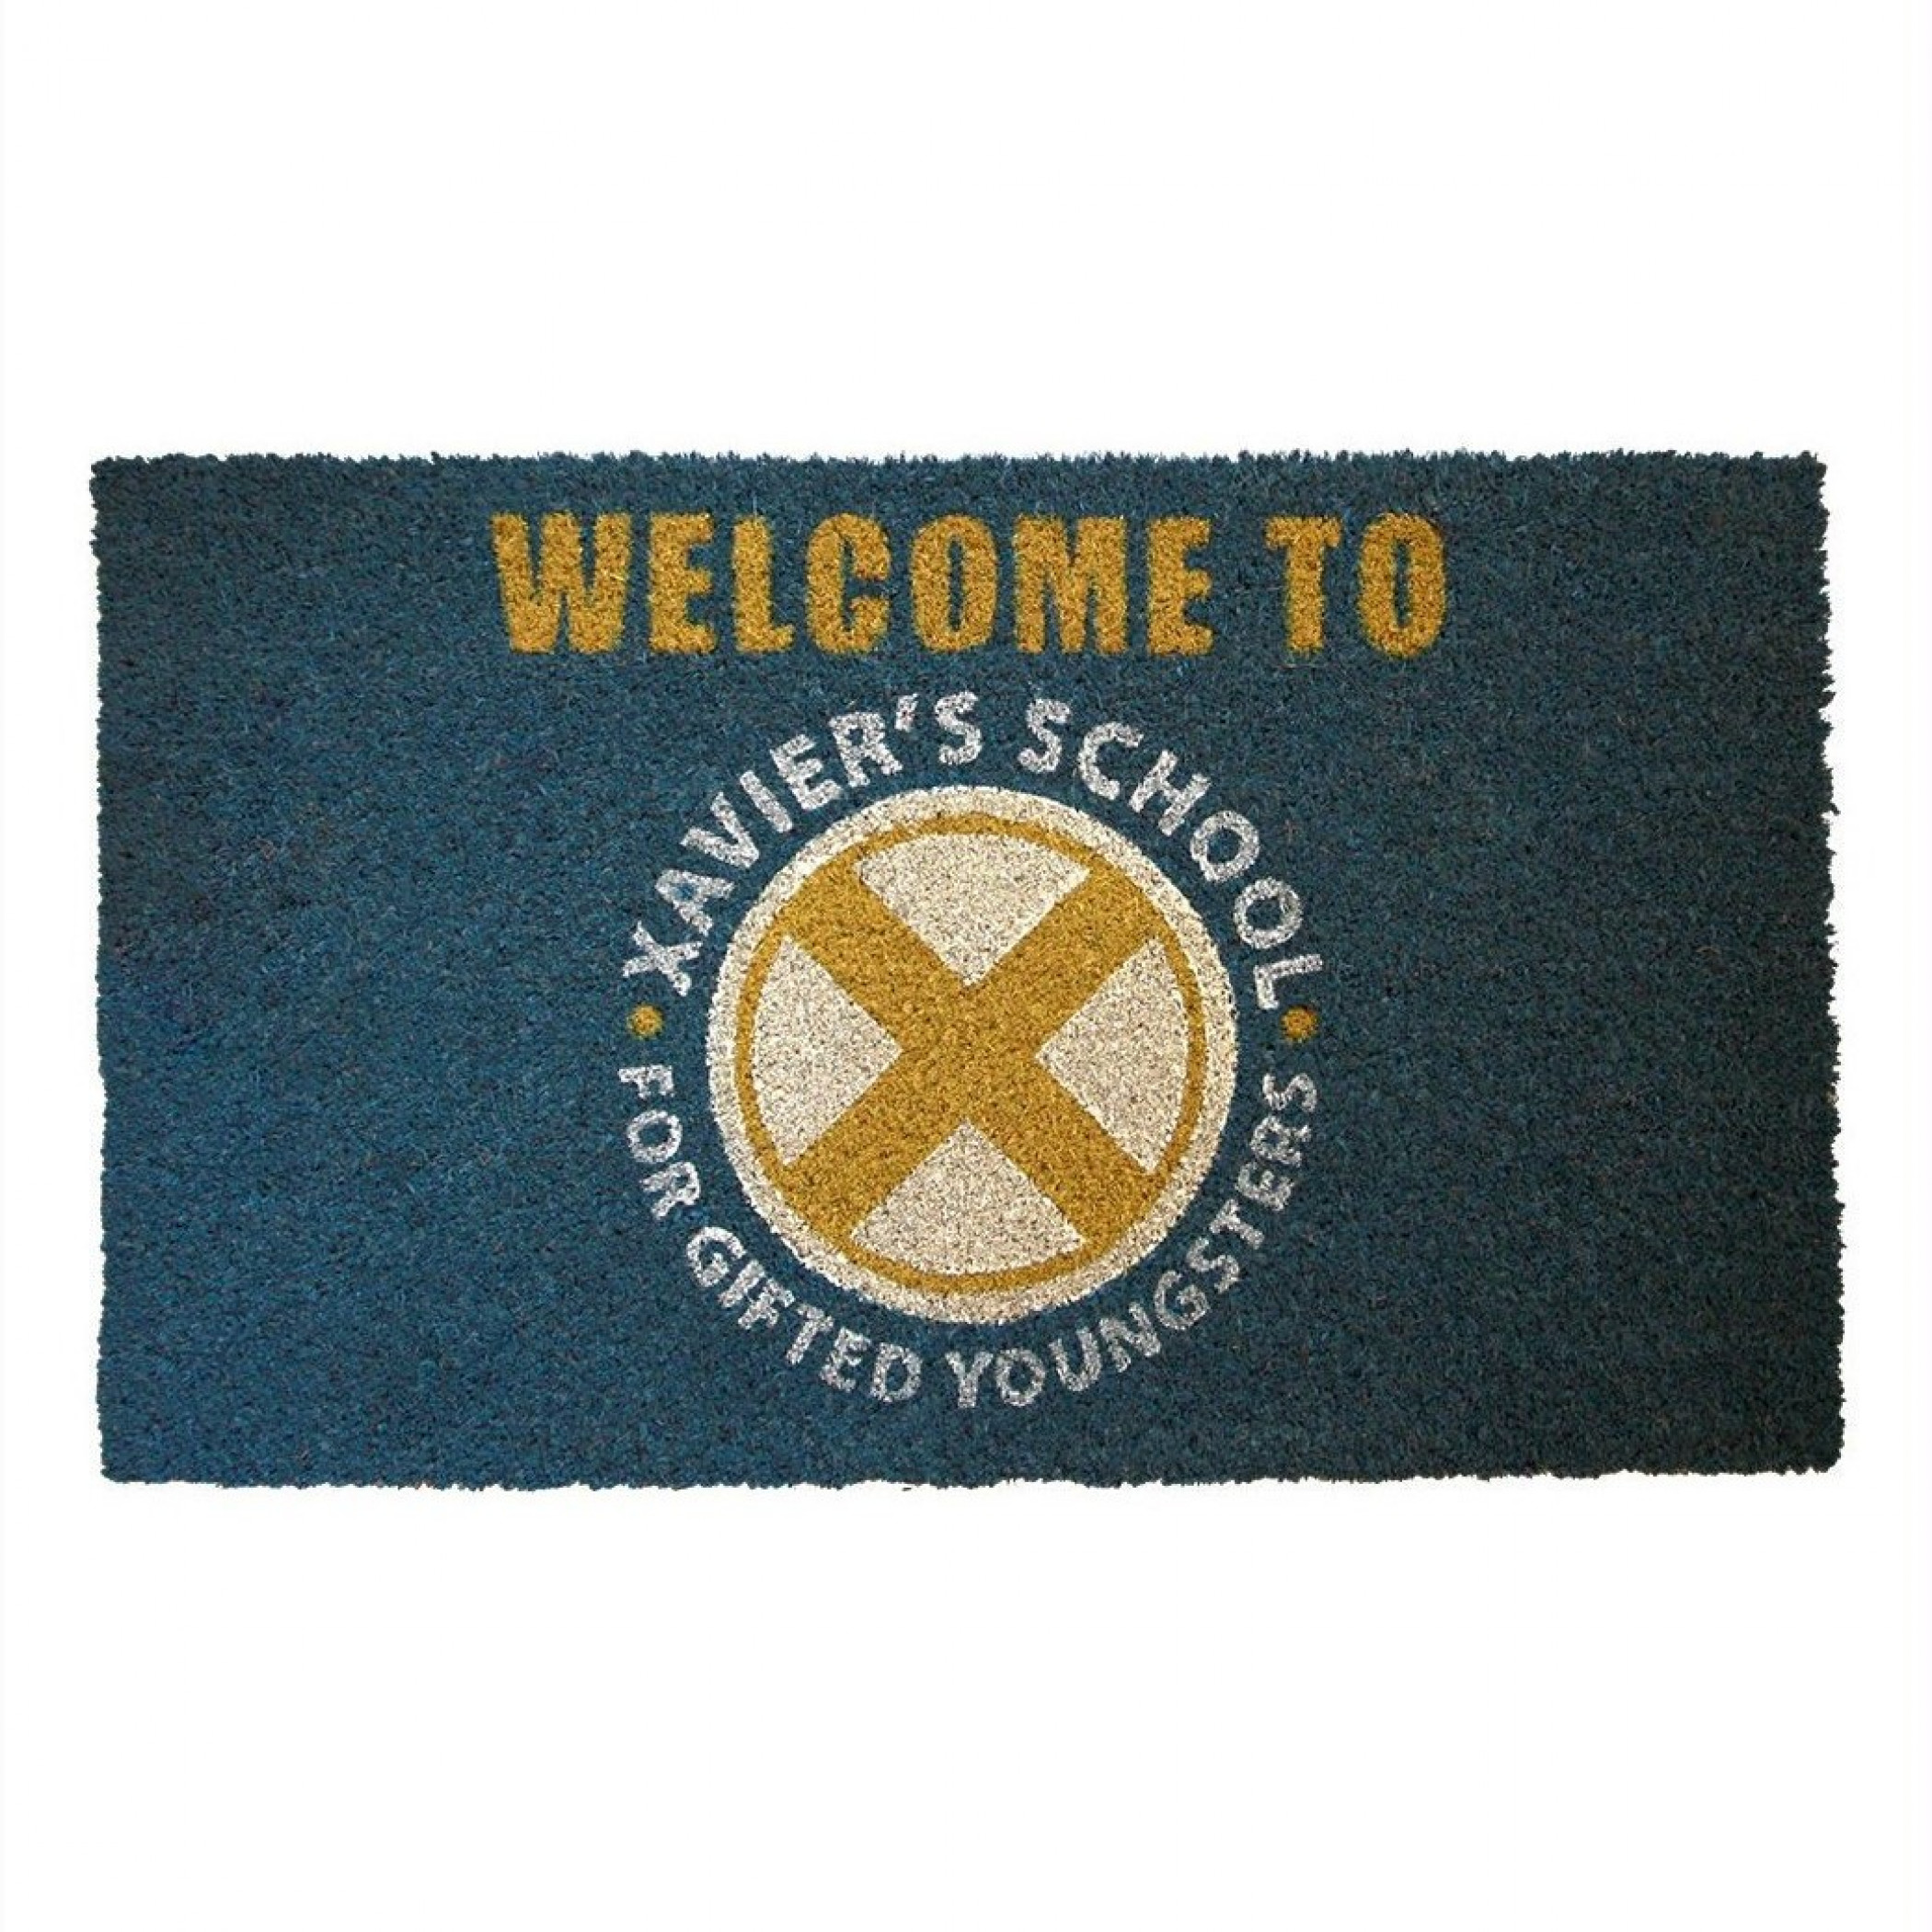 "X-Men Xavier's School For Gifted Youngsters 17""x 29"" Doormat with Non-skid Back"